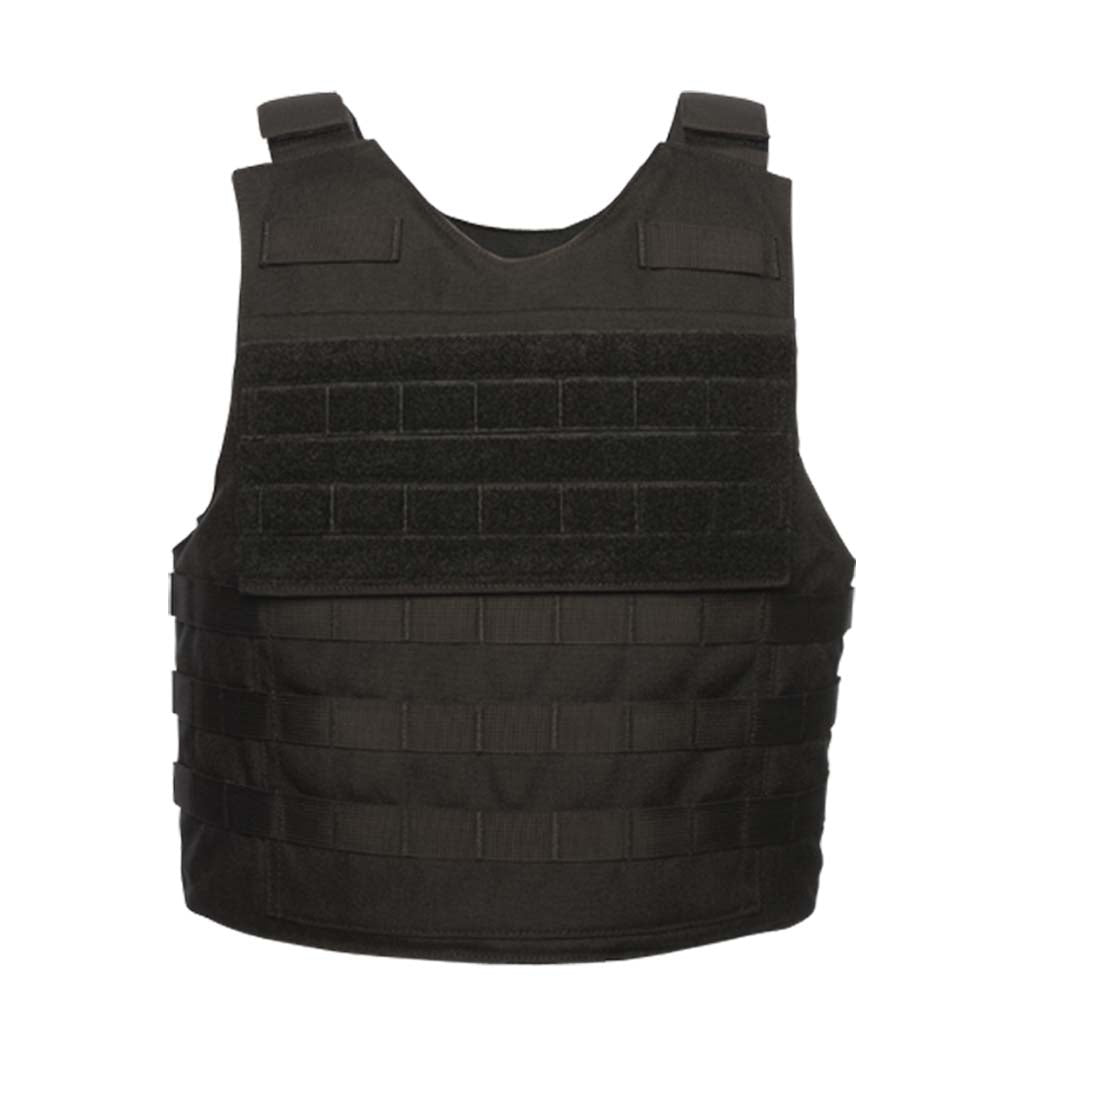 GH Armor Tactical Response Carrier [TRC]